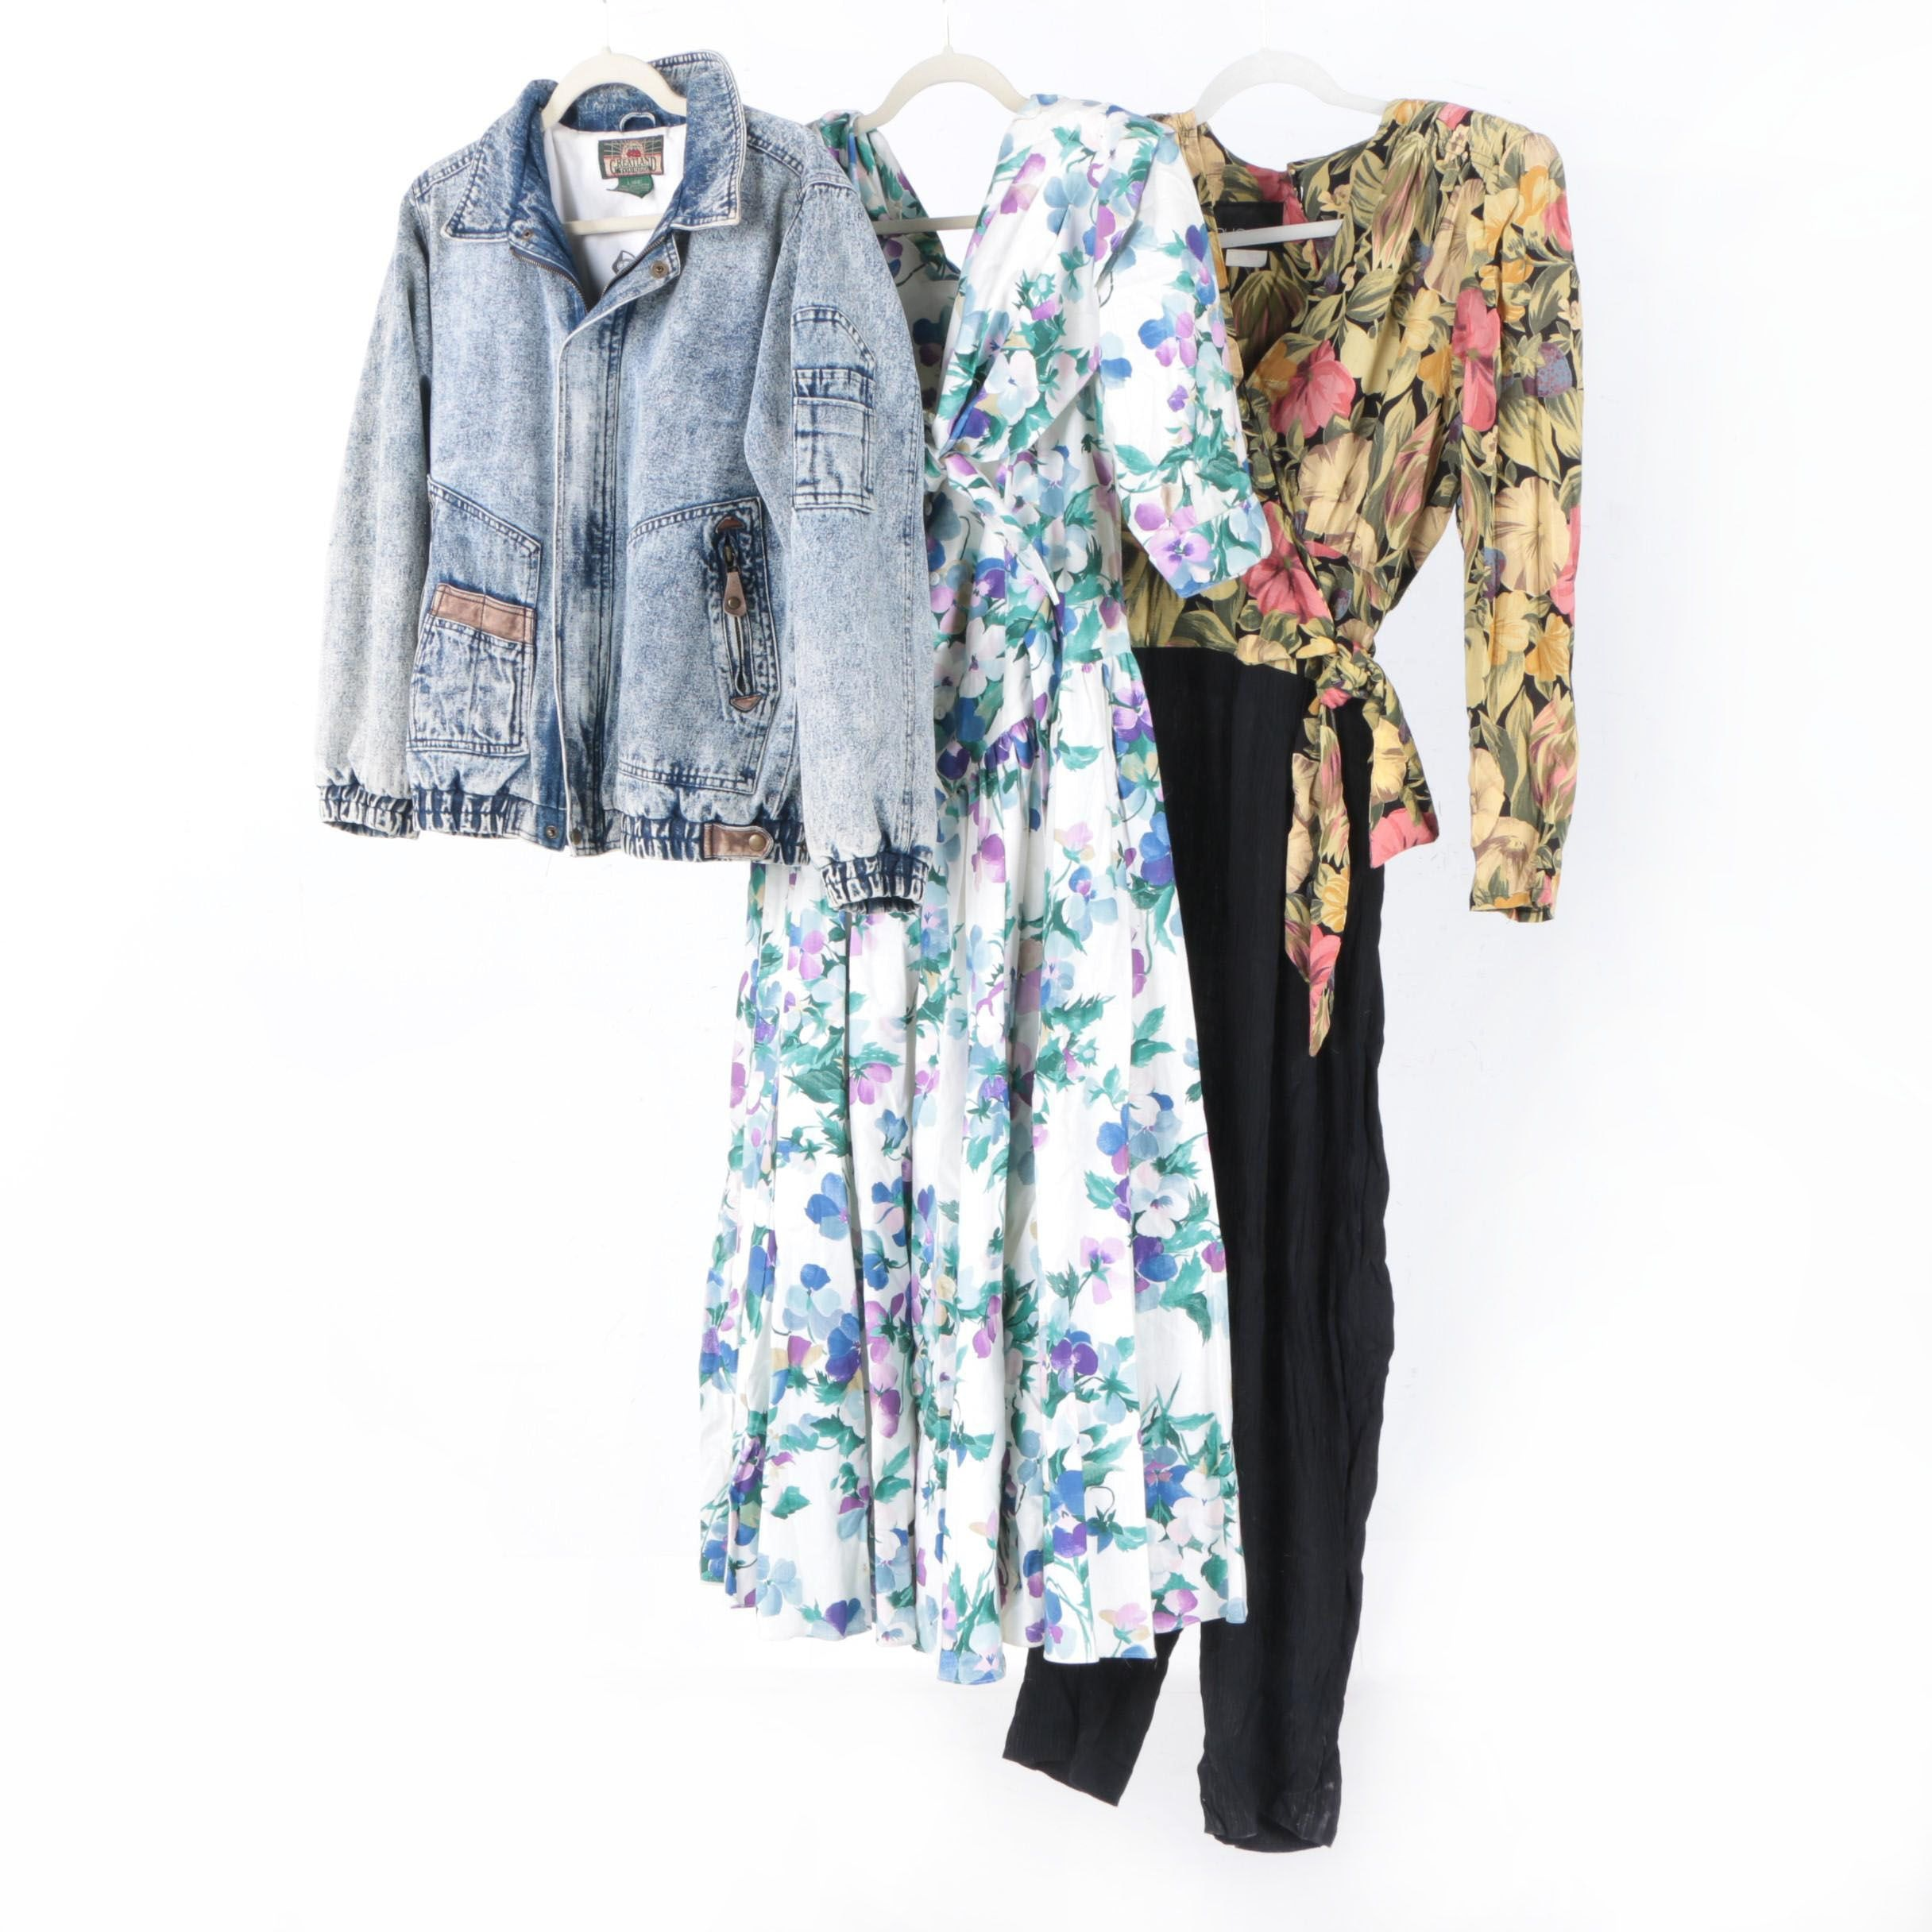 Women's Vintage Clothing Including Greatland Touring